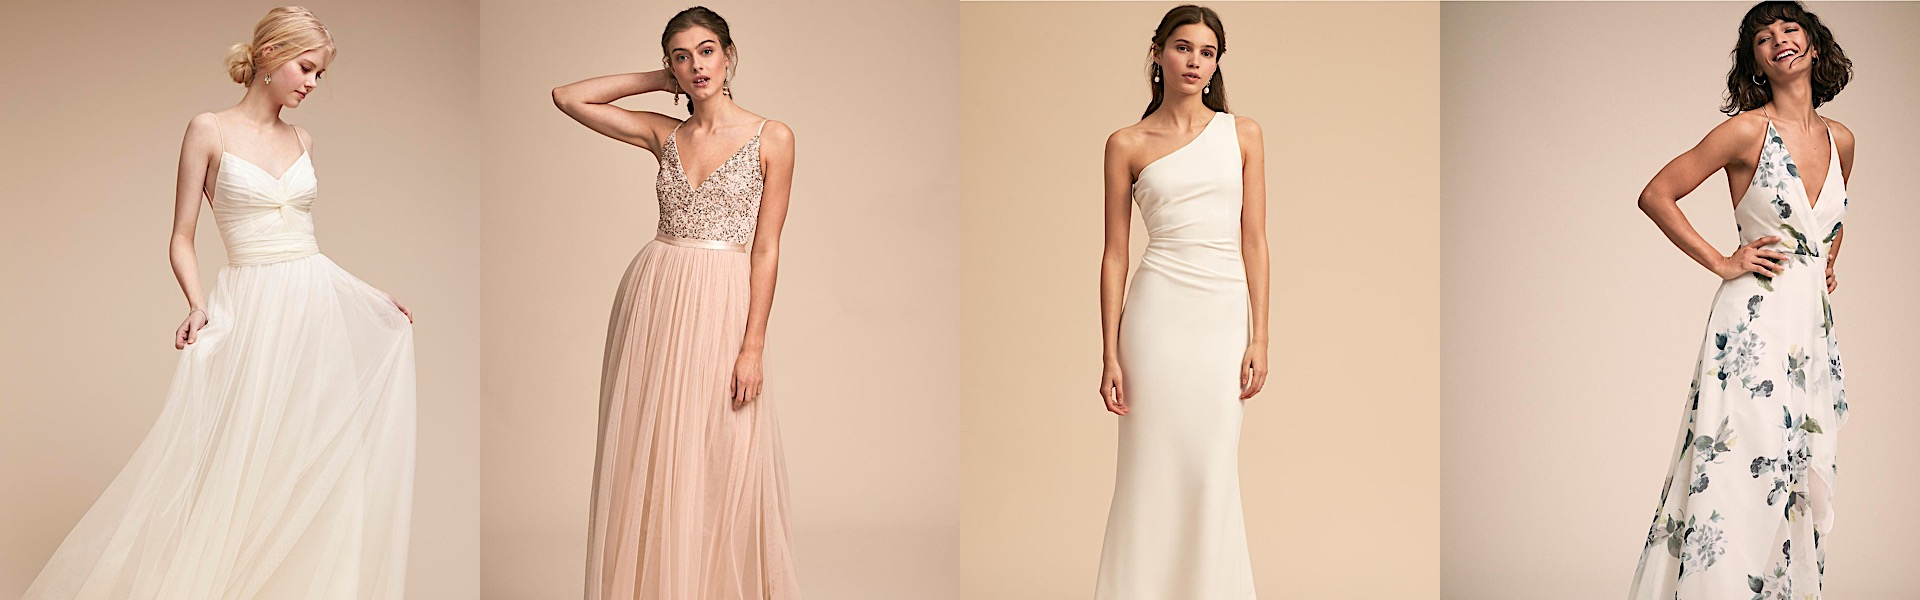 5bbd669aaa2 Elegantly Chic BHLDN Bridesmaids Dresses that Can Be Worn as Wedding Gowns